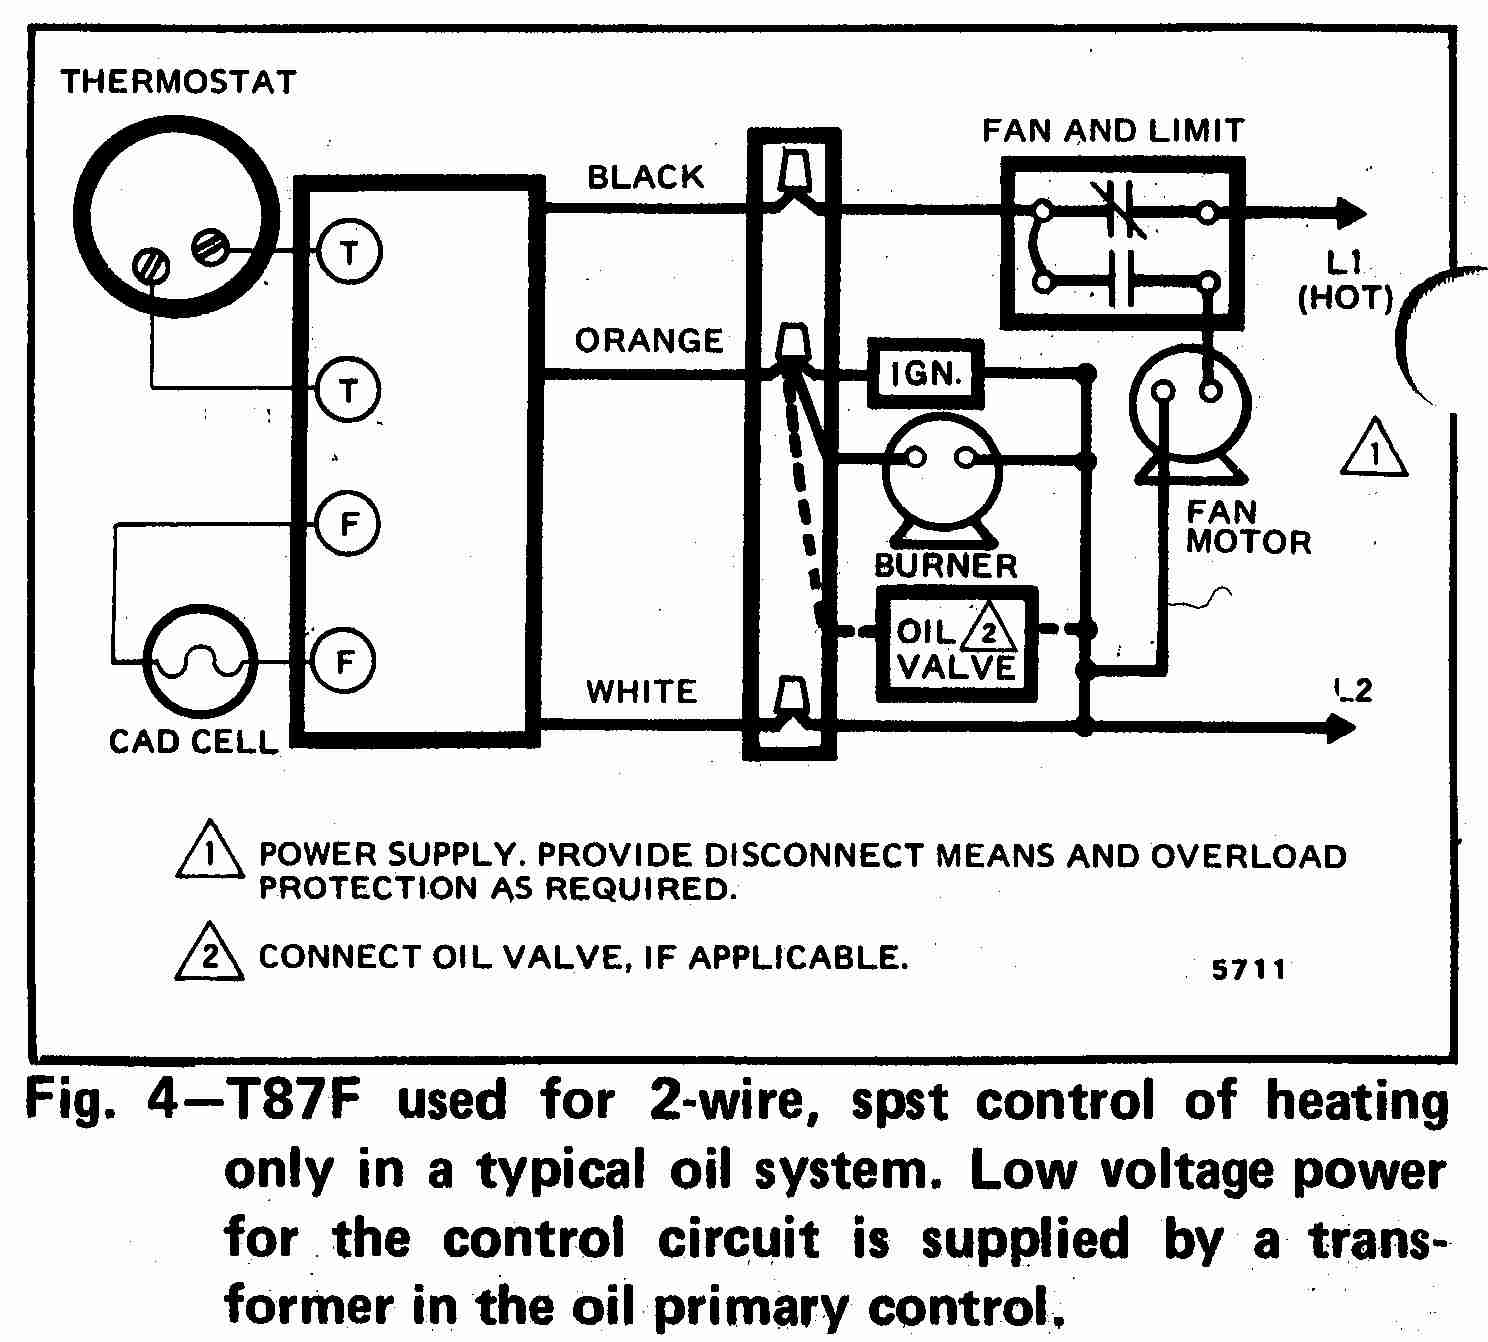 Room Thermostat Wiring Diagrams For Hvac Systems Spst And Ptm Switch Circuits Honeywell T87f Diagram 2 Wire Control Of Heating Only In